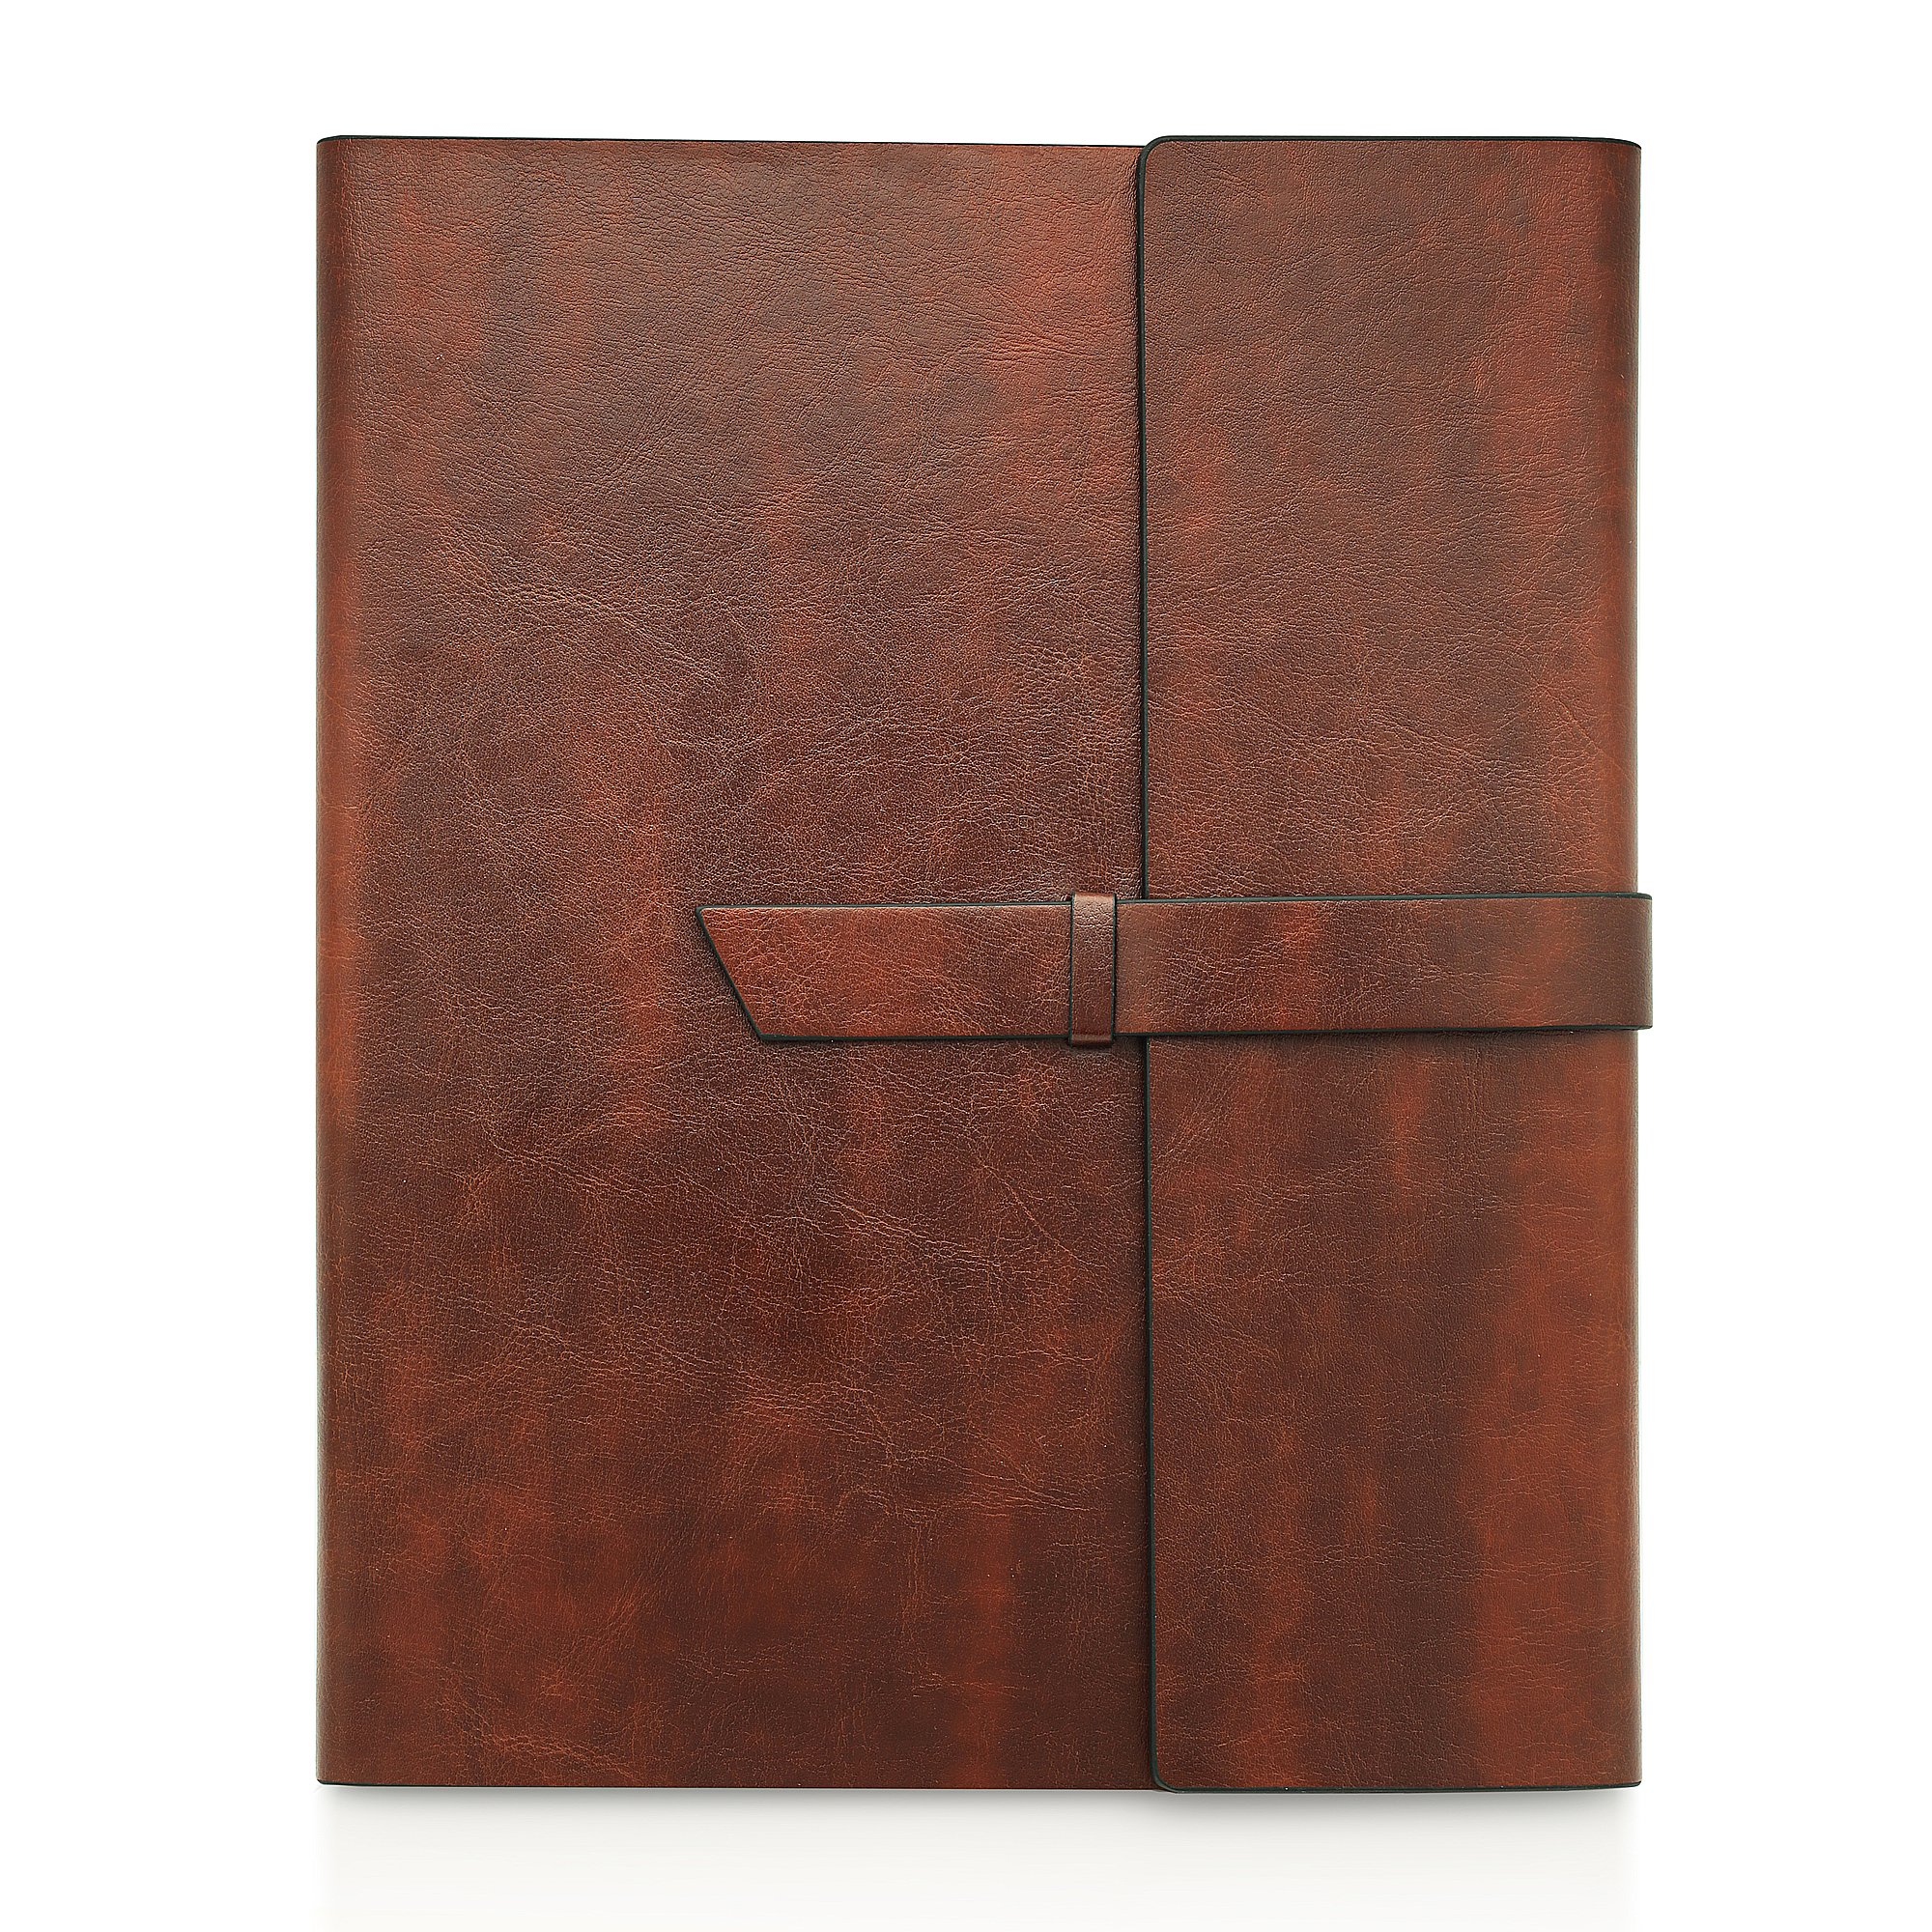 Gallaway Leather Padfolio Portfolio Folder - Perfect for Your Interviews, Resumes, Presentations and Meetings and it fits Letter, Legal, A4 Notebooks and Notepads (Dark Chocolate)